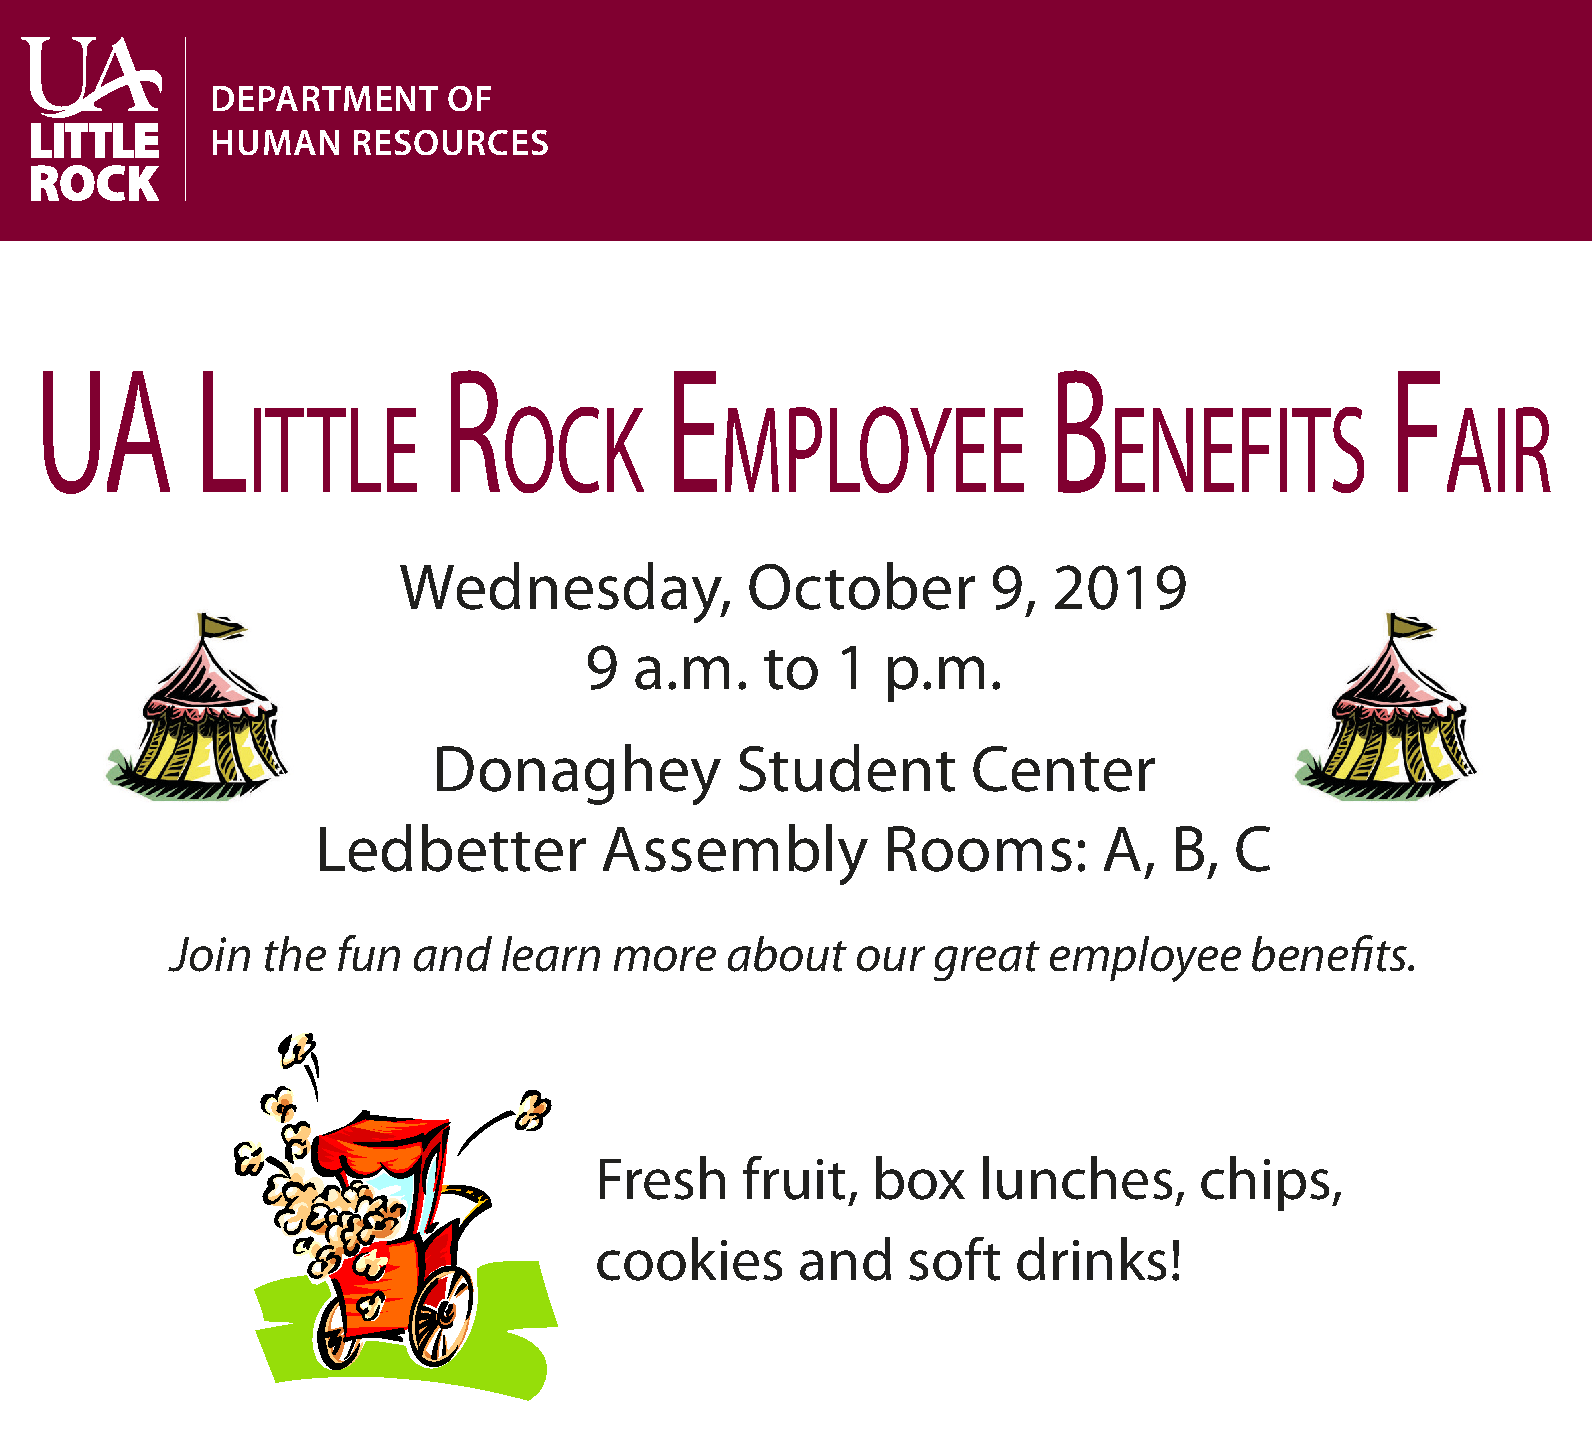 2019 Employee Benefits Fair flyer from the UA Little Rock Department Human Resources